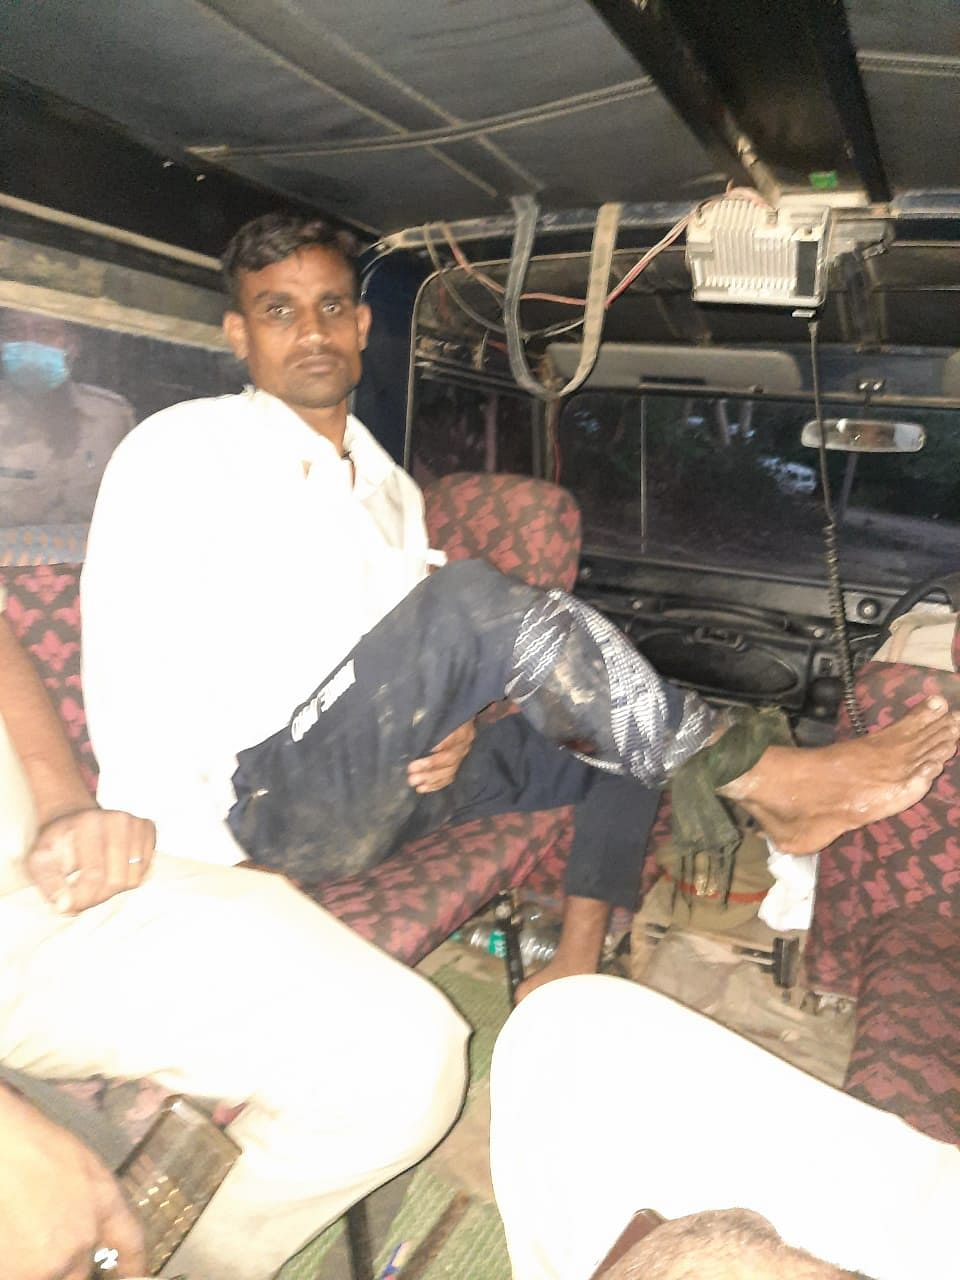 barabanki-shooting-in-the-crook39s-leg-in-the-encounter-the-main-constable-injured